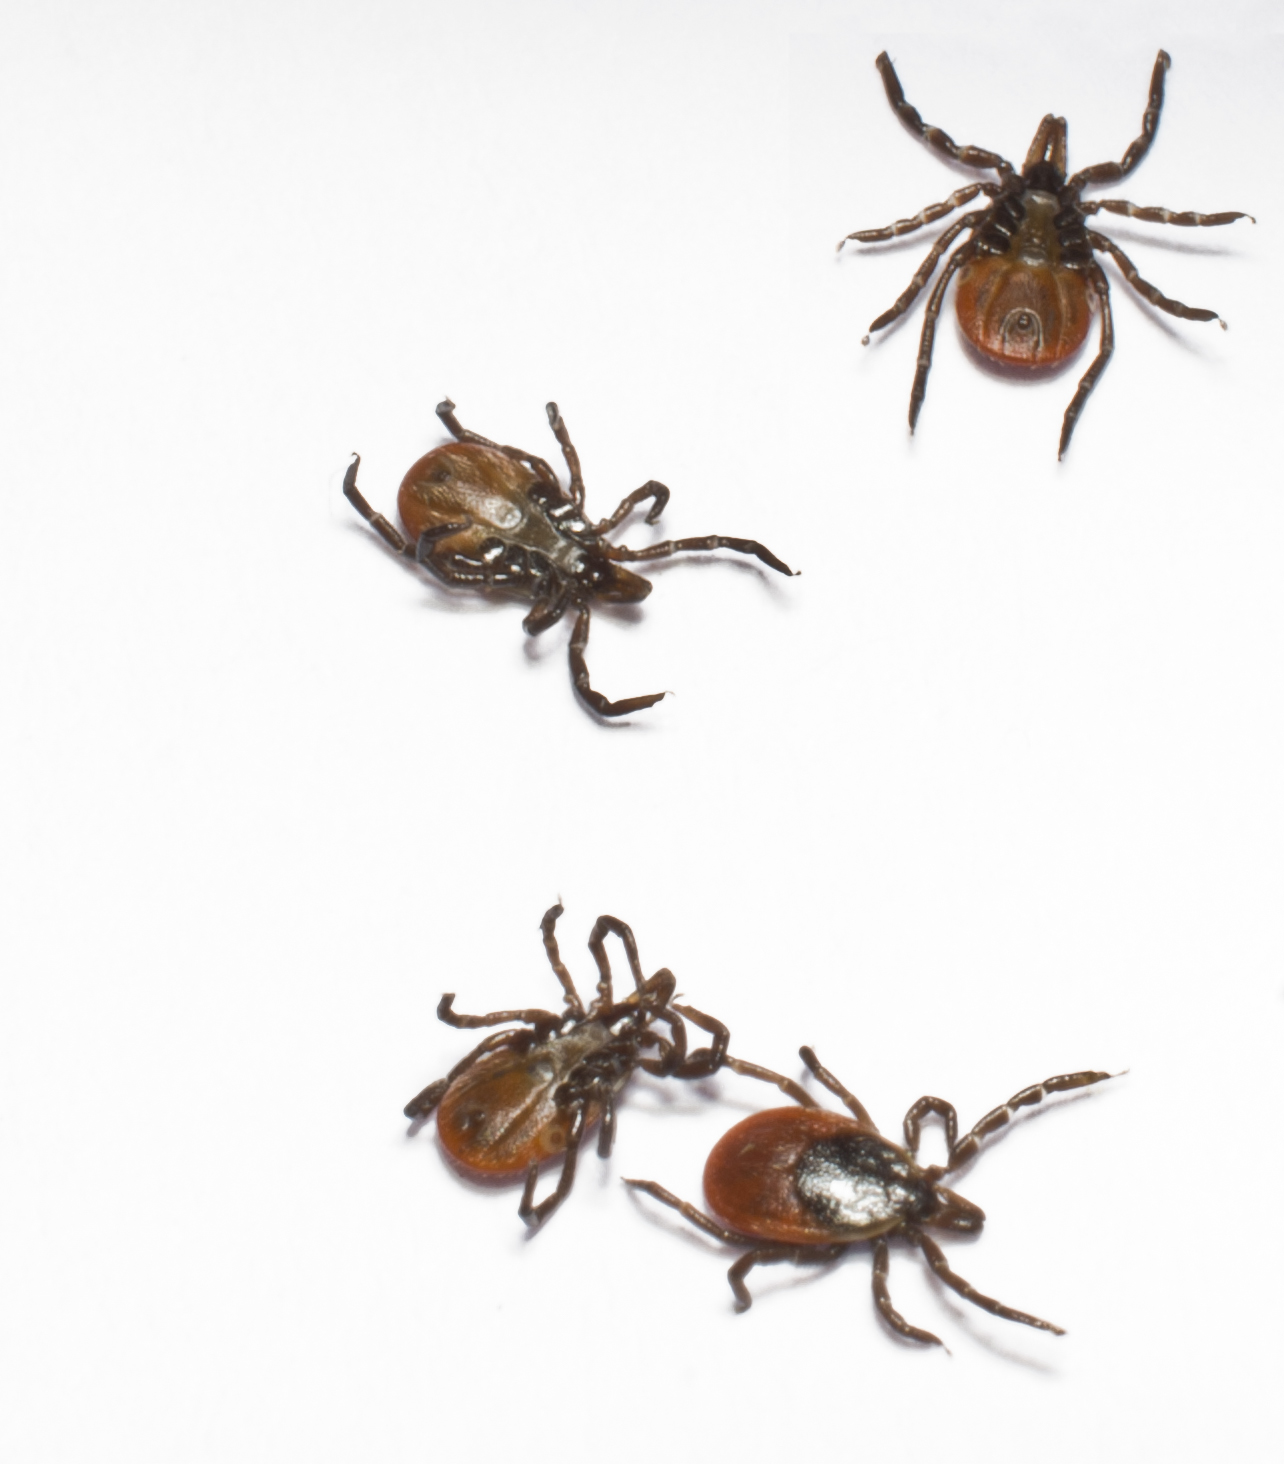 Ticks Ticks are tear dropped shaped, they range from brownish black to grey depending on the species. Immature ticks have six legs, mature ticks have eight legs and they are relatively flat before feeding, some ticks become plump and round after feeding. They are the most common during the warmer months. They move to areas where there are a lot of mammals, ground-dwelling birds, and lizards. Common places are: moist woodlands and areas around the edge of forests with a lot of plants, along forest trails, grassy areas, in and around campgrounds, and in abandoned grassy yards in urban areas.